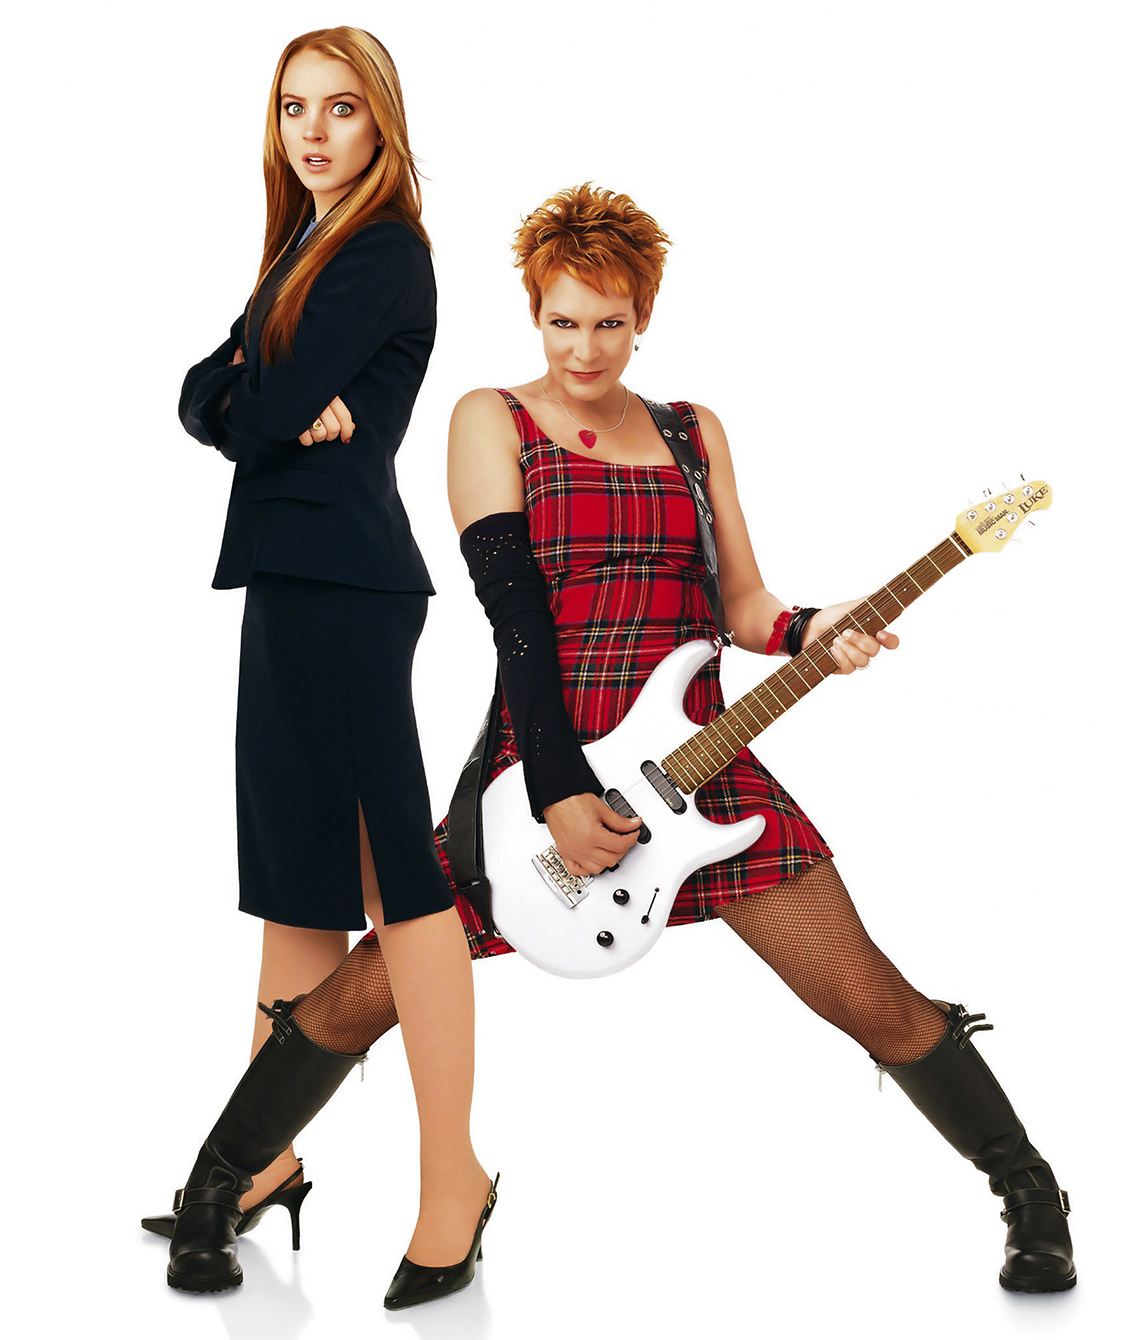 lindsay lohan and jamie lee curtis in the remake of the film freaky friday